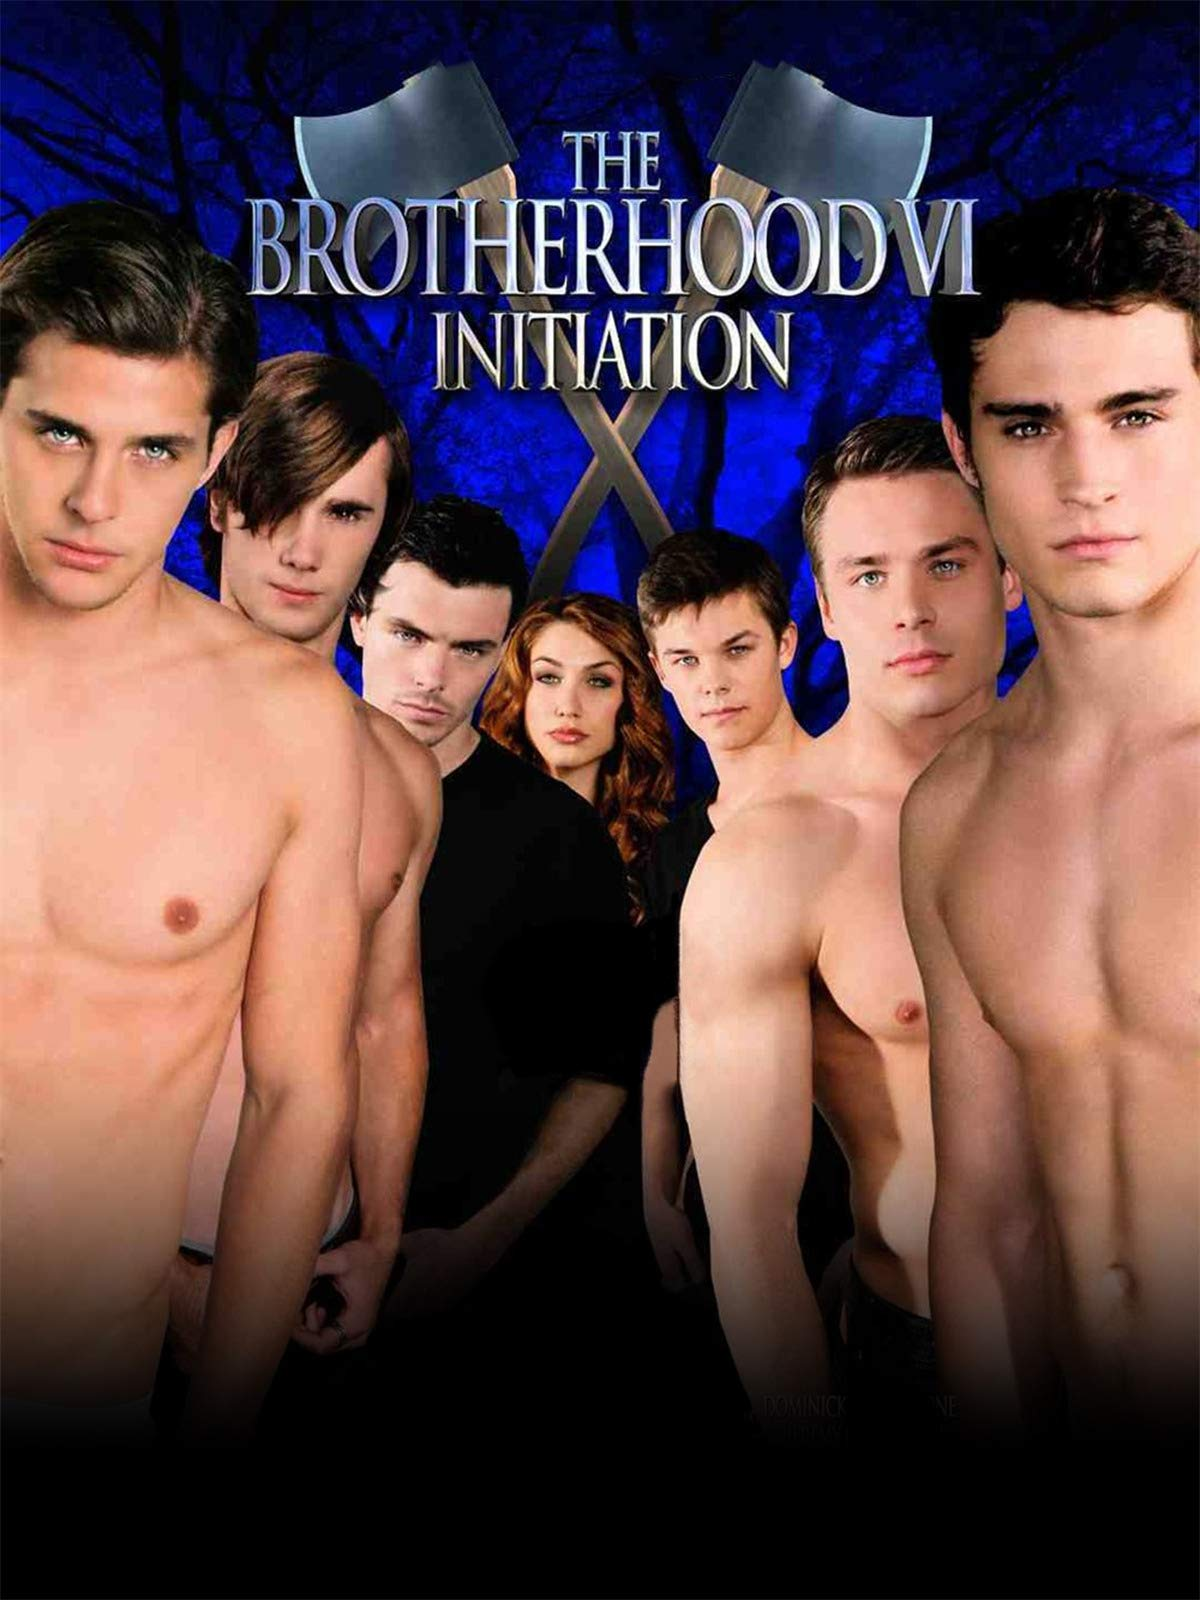 The Brotherhood VI: Intiation